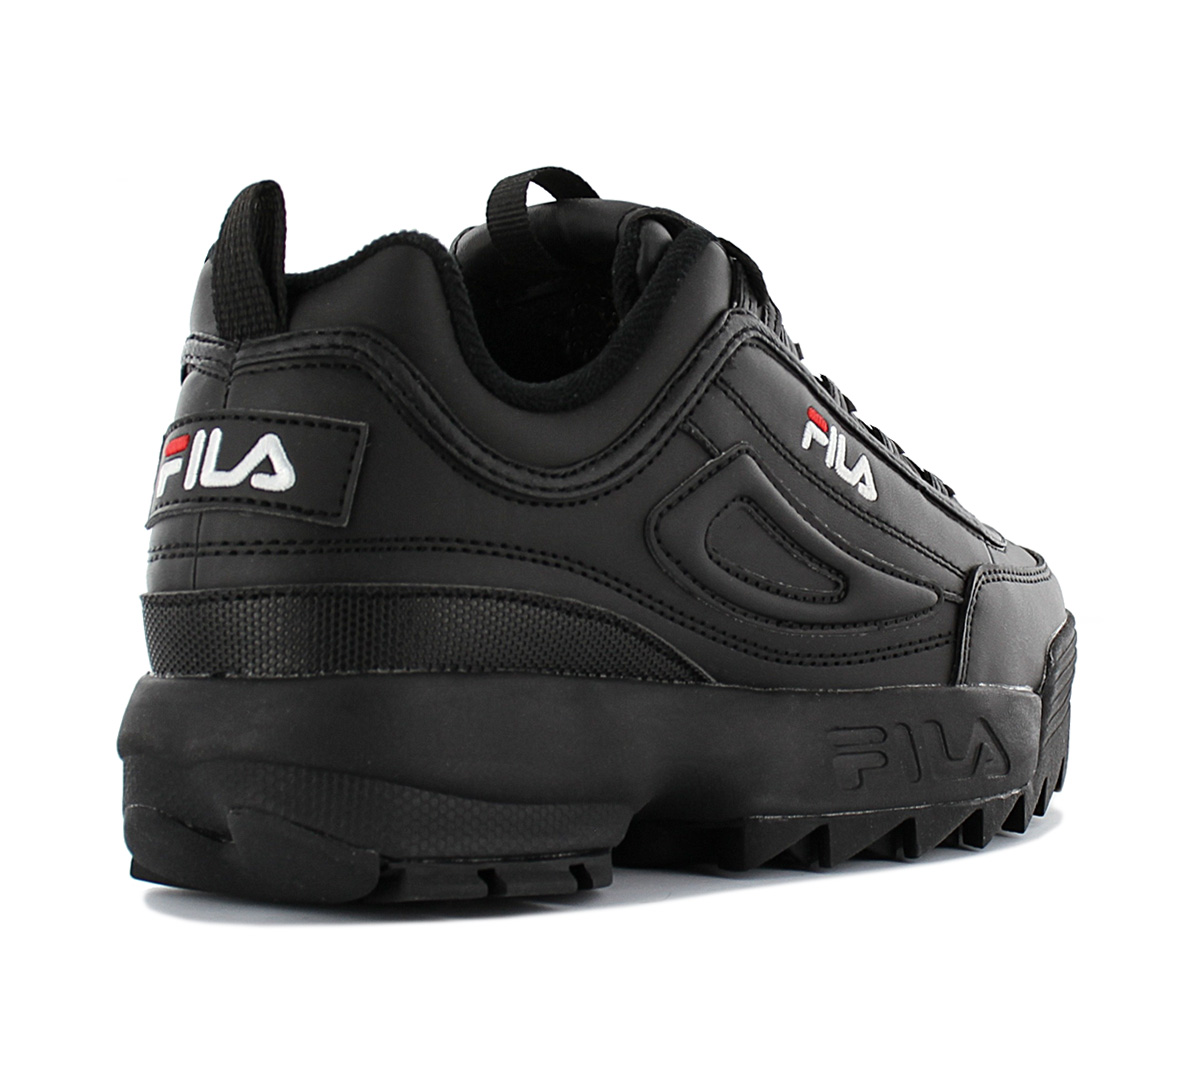 Details about Fila Disruptor Low W Women's Sneaker Shoes 1010302.12V Black Leather Trainers